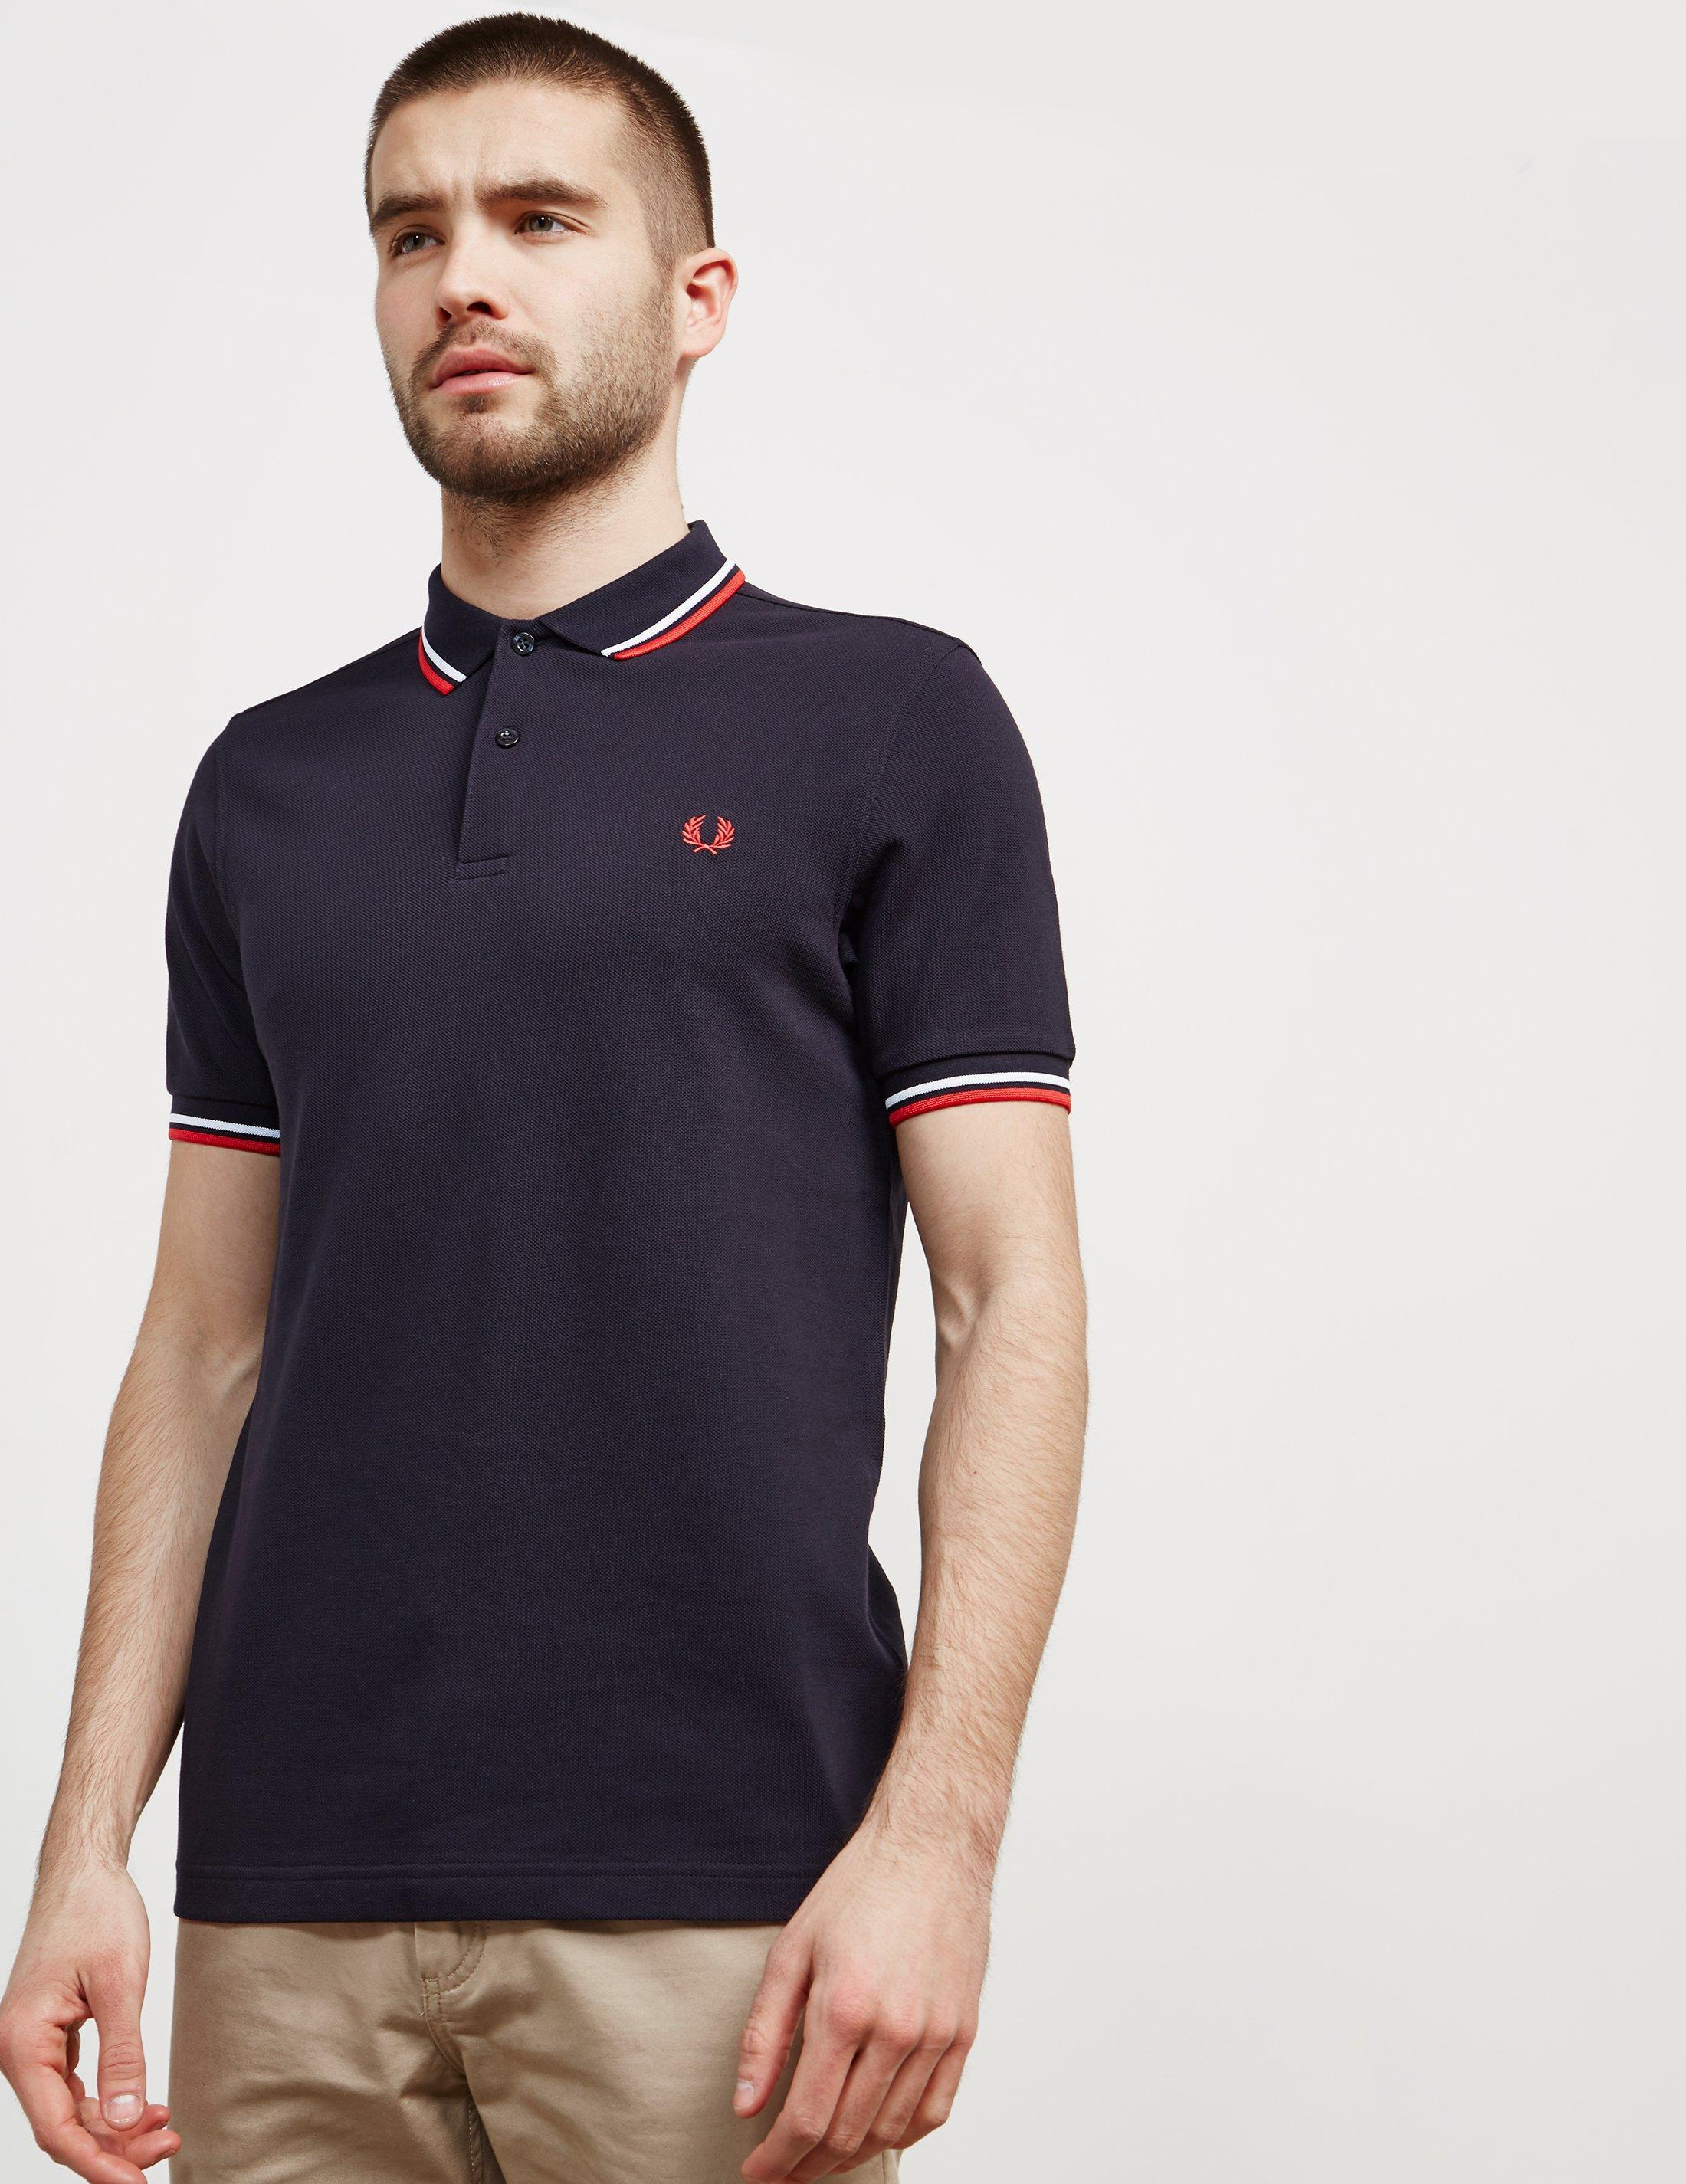 85899d73c Fred Perry Twin Tipped Short Sleeve Polo Shirt Dark Navy white red ...